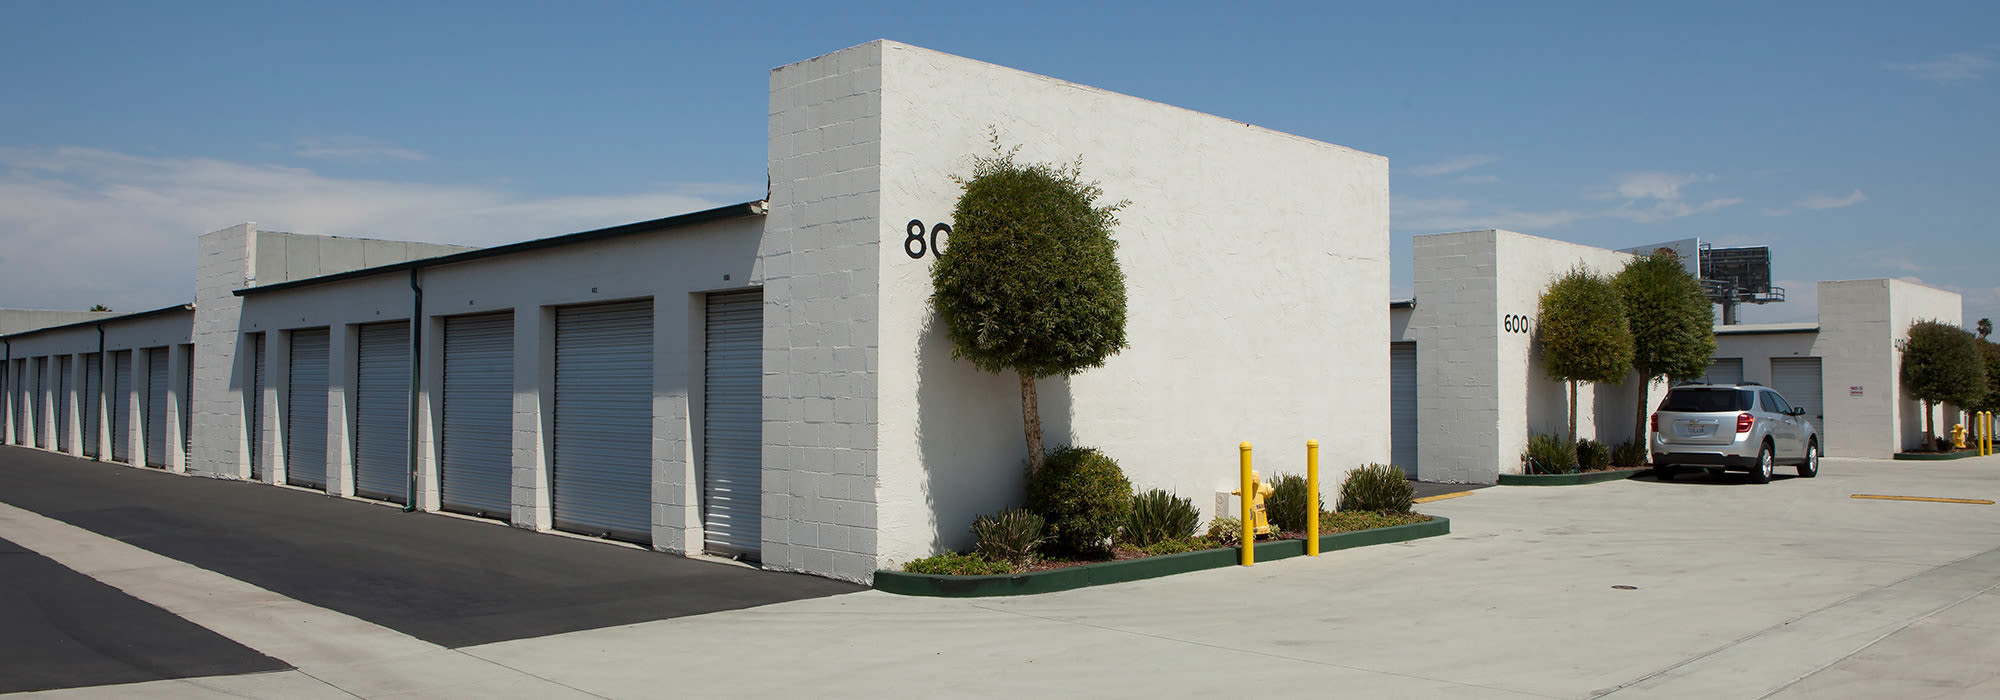 Self Storage In Encino